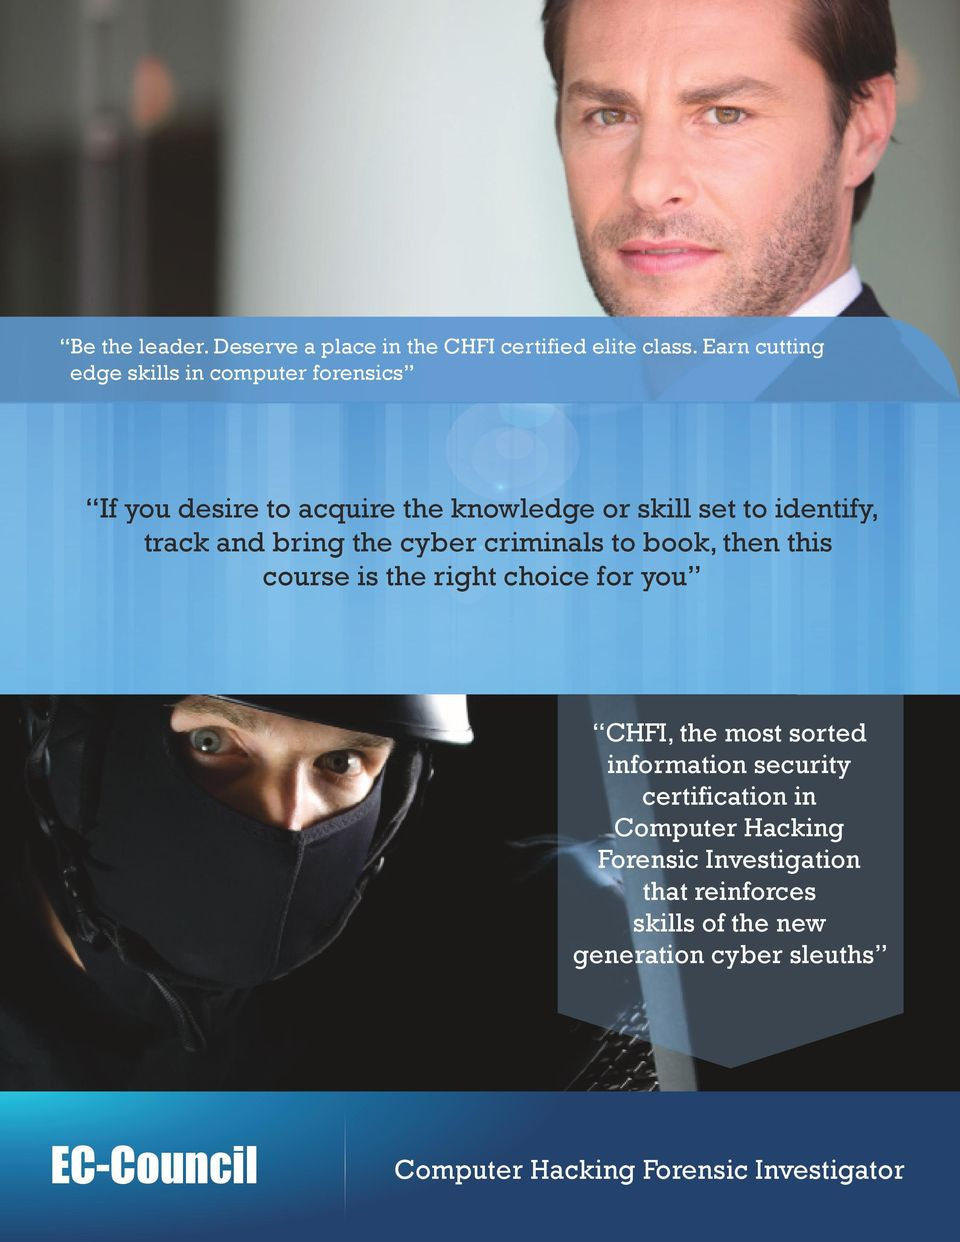 identify, track and bring the cyber criminals to book, then this course is the right choice for you CHFI,